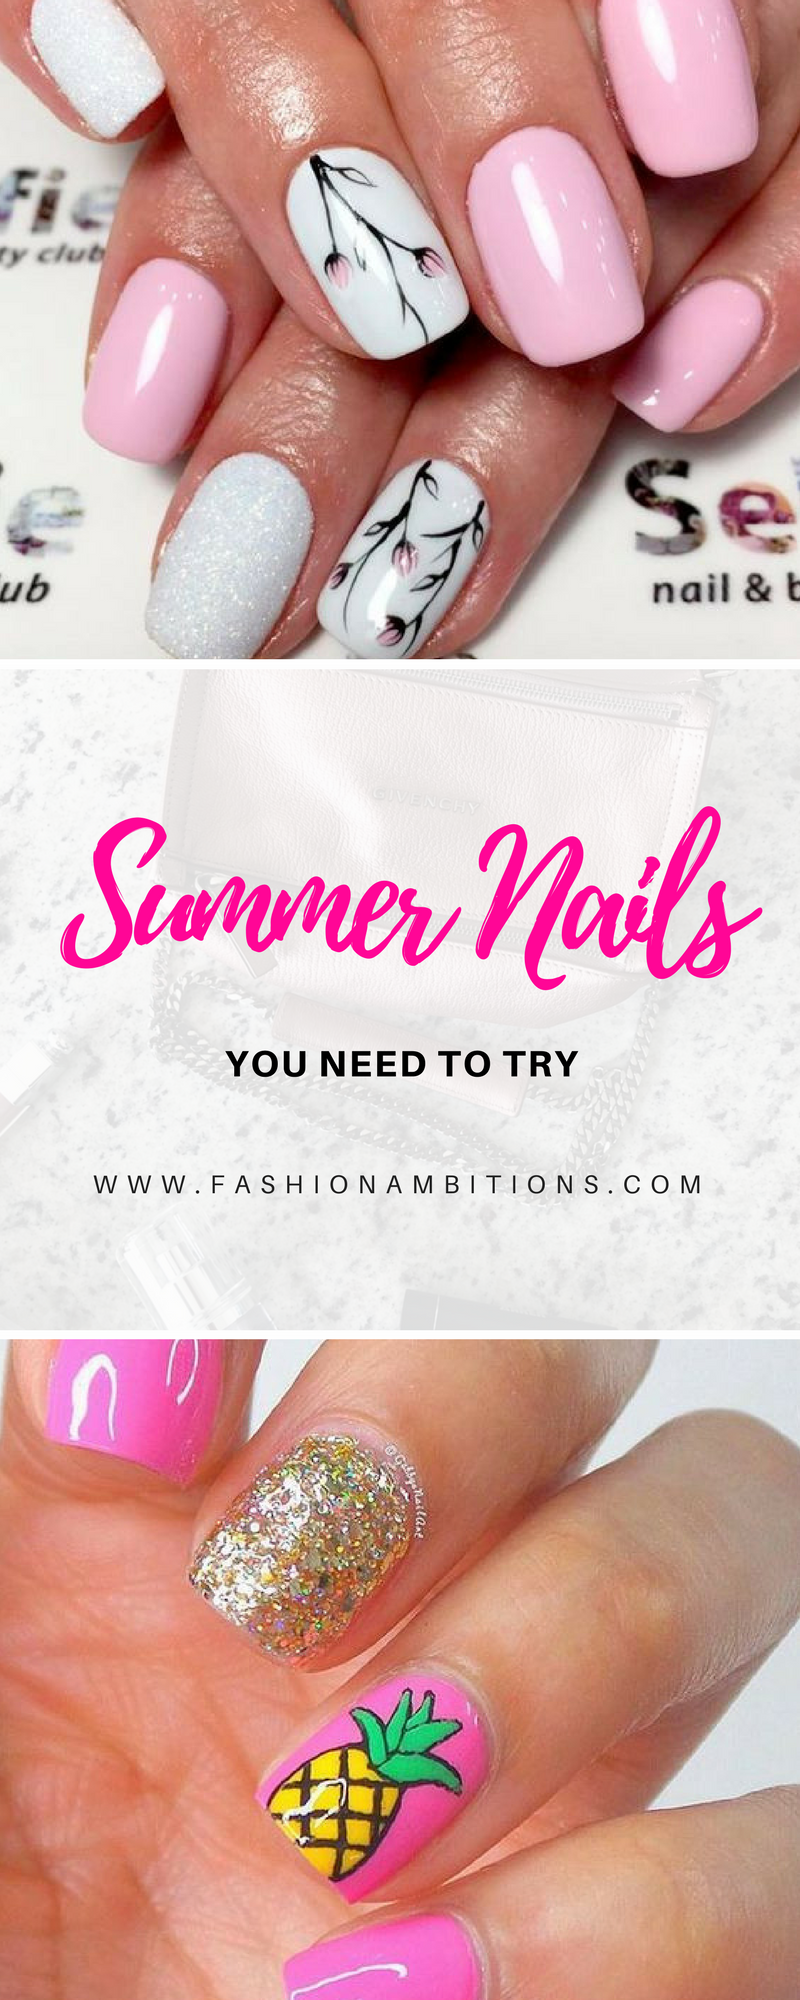 Summer Nails Designs You Need To Try | Nails | Pinterest ...